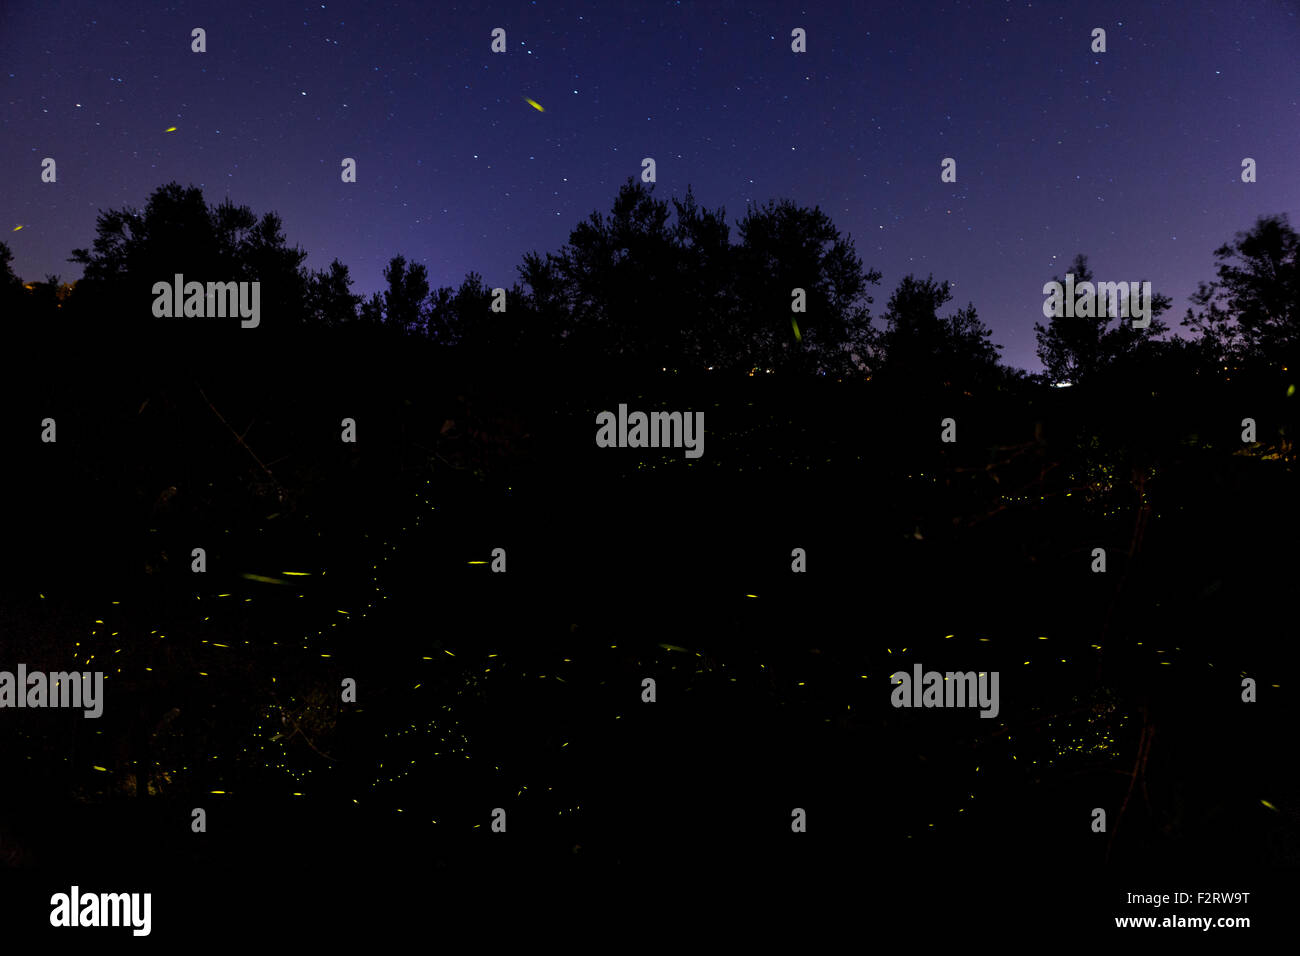 Swarm of fireflies flying at night - Stock Image